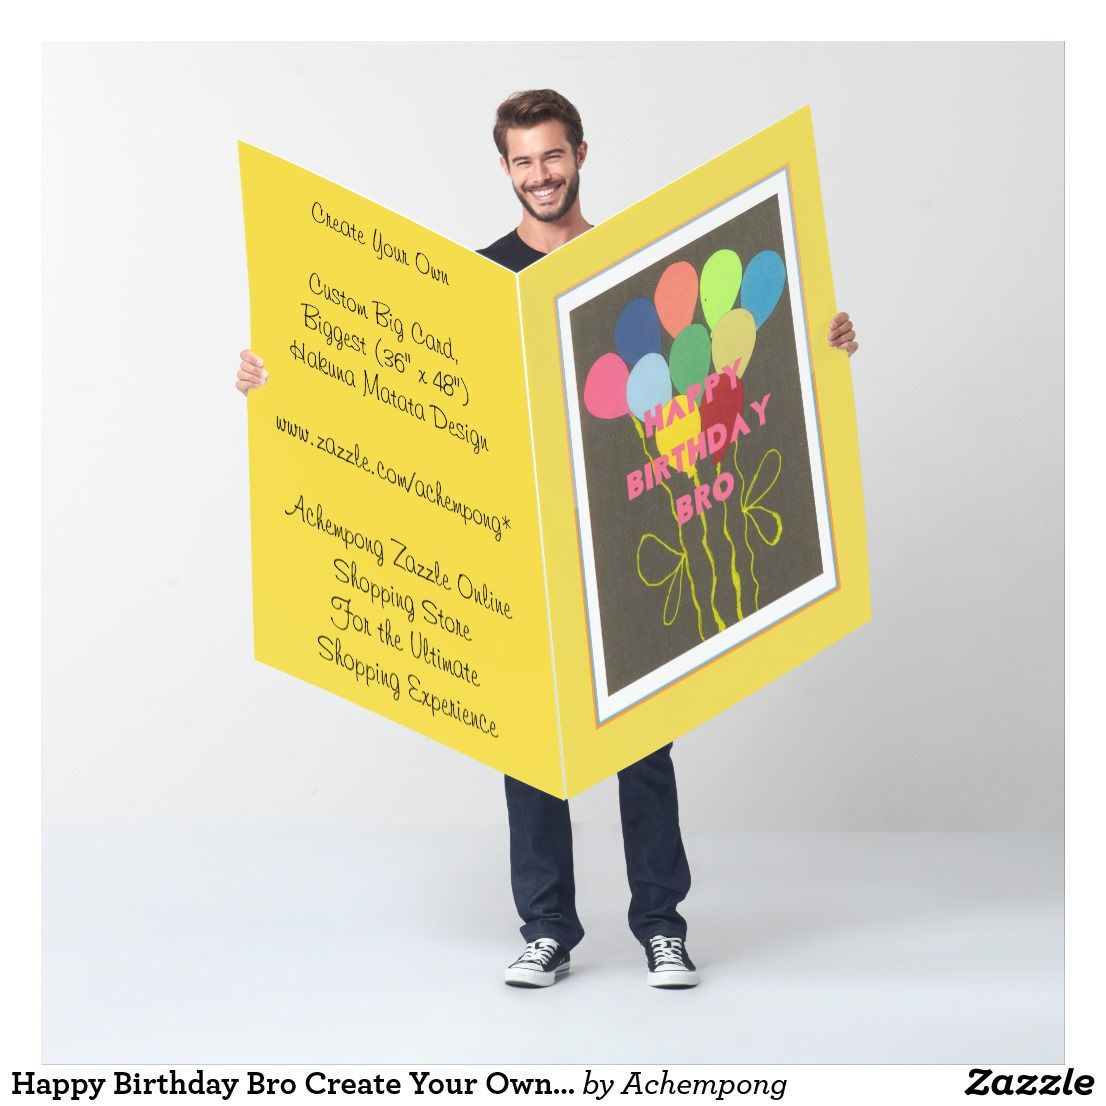 Happy Birthday Bro Create Your Own Text And Image Card Pinterest Bro